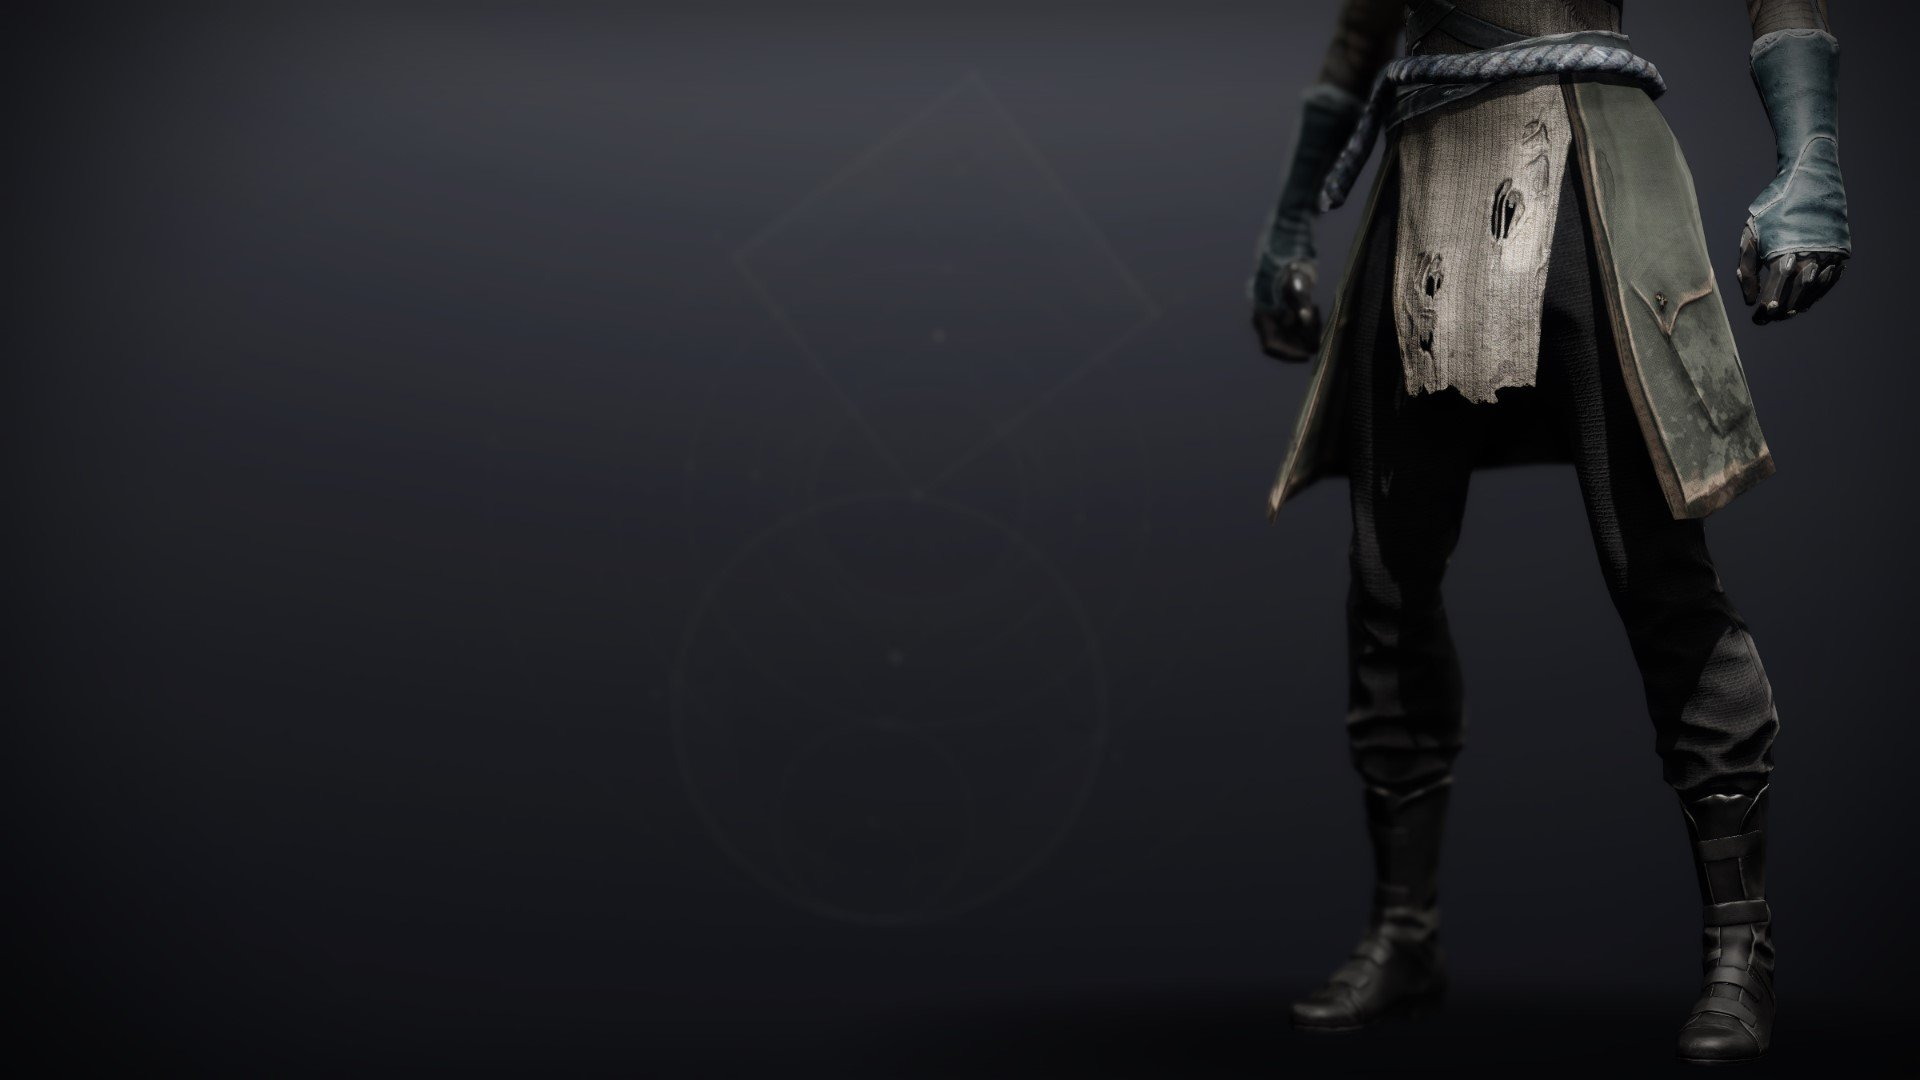 An in-game render of the Calamity Rig Boots.